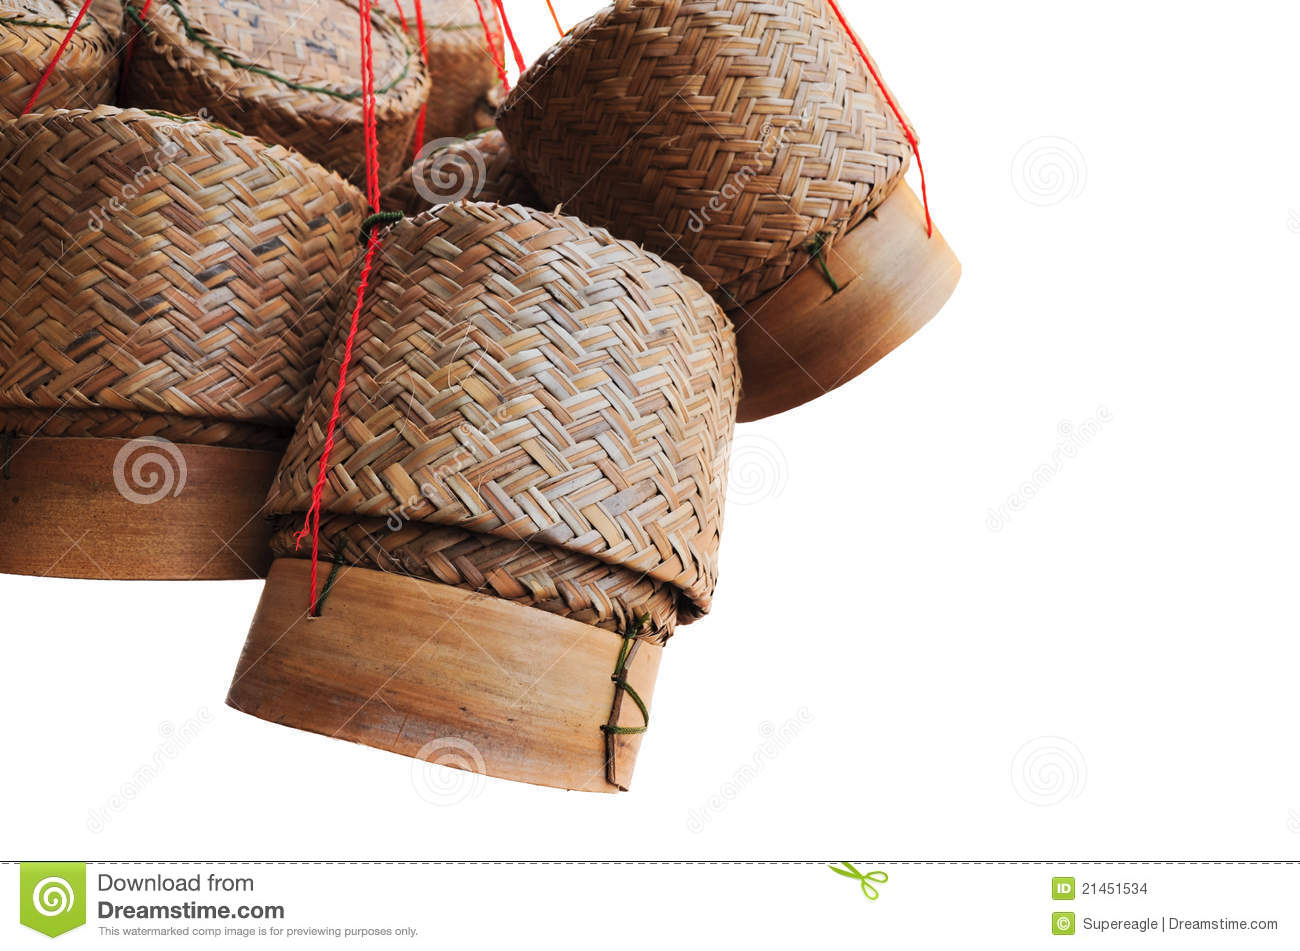 Wooden Rice Box In Thailand Stock Images   Image  21451534